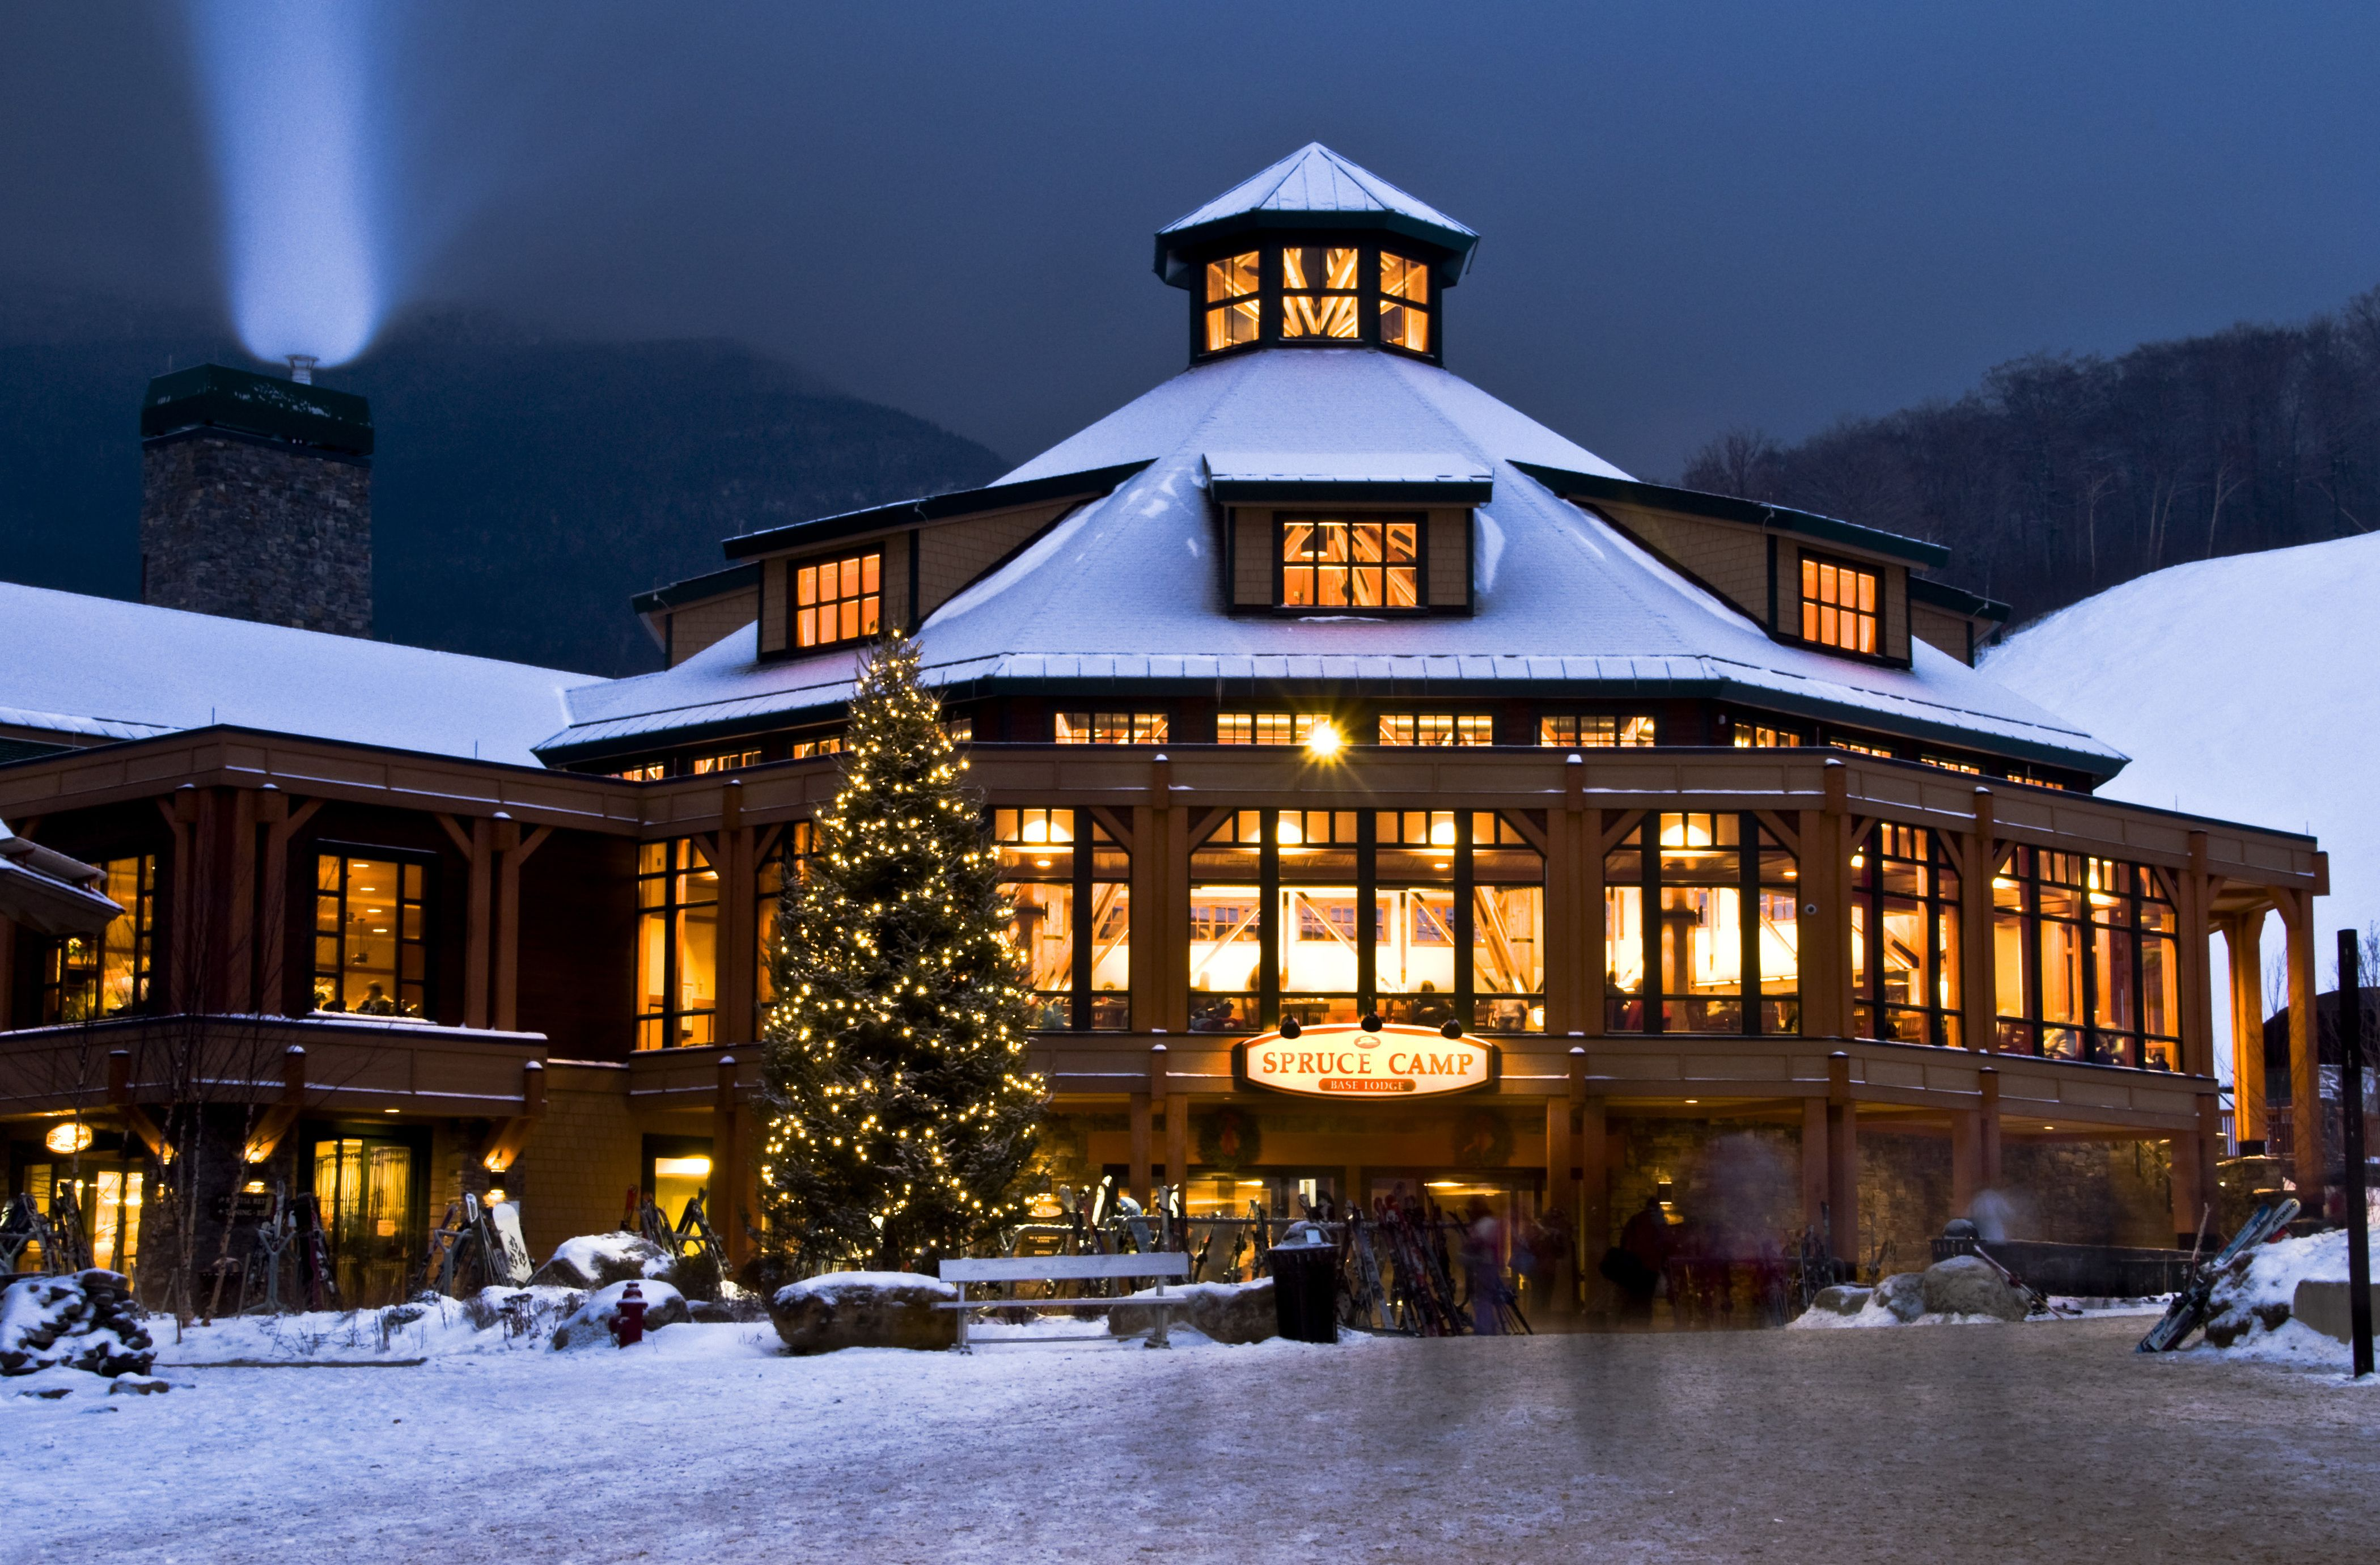 Stowe Vermont is known as a 4 Season Resort Town located in the ...